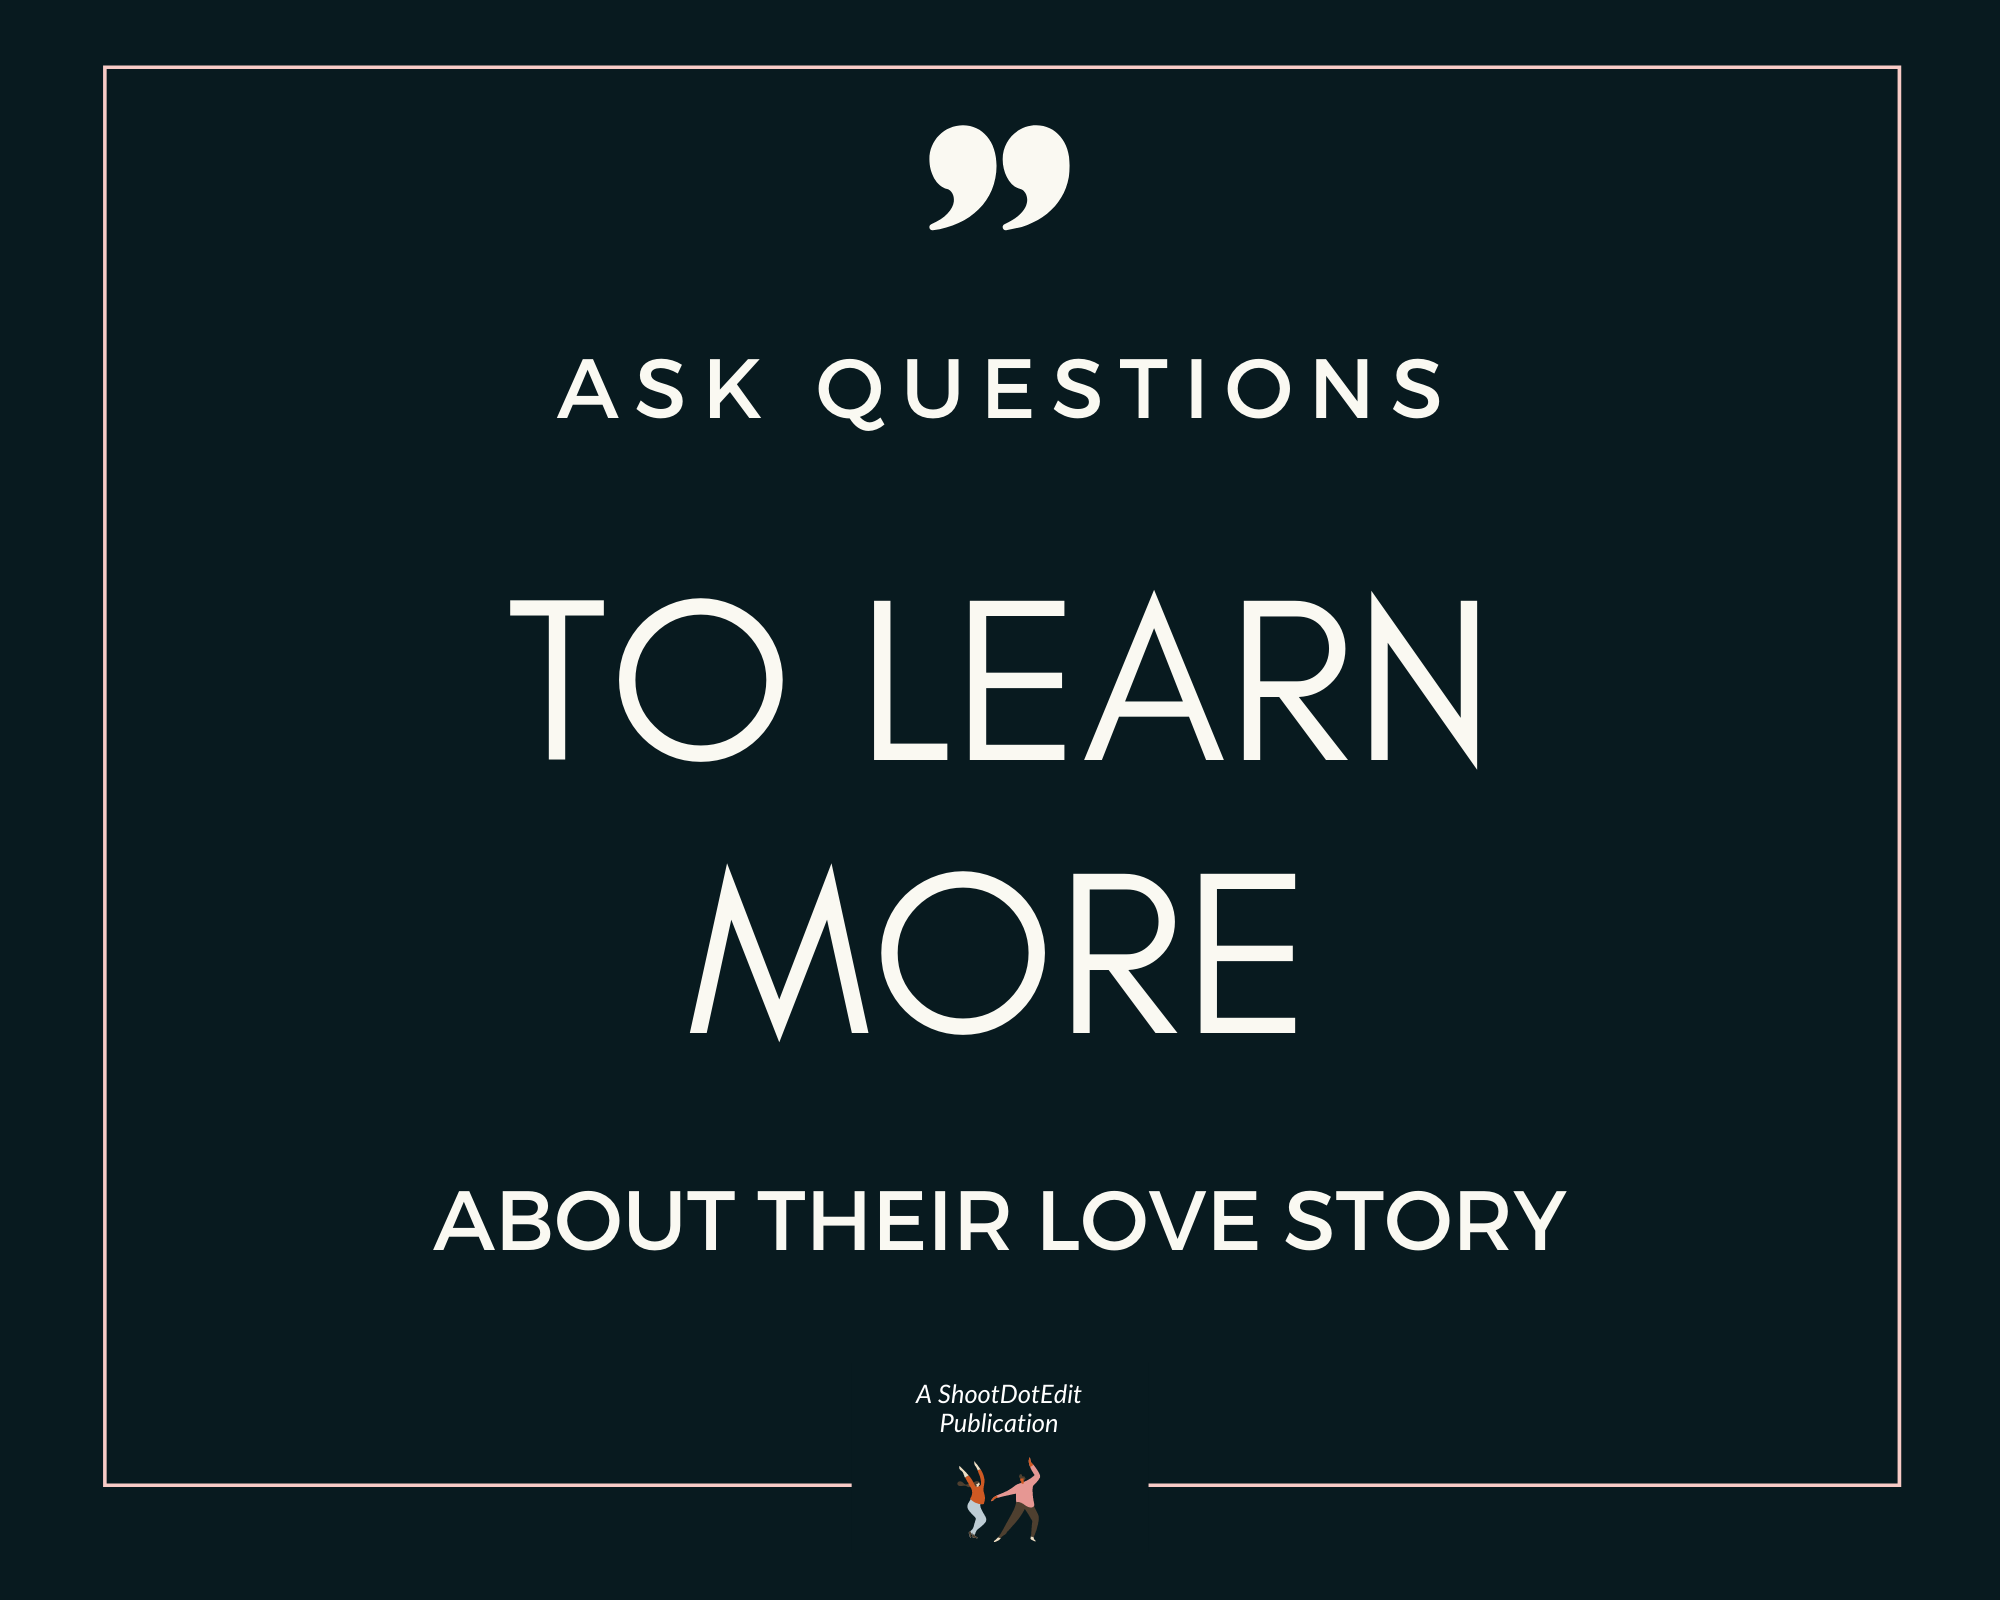 Infographic stating Ask questions to learn more about their love story